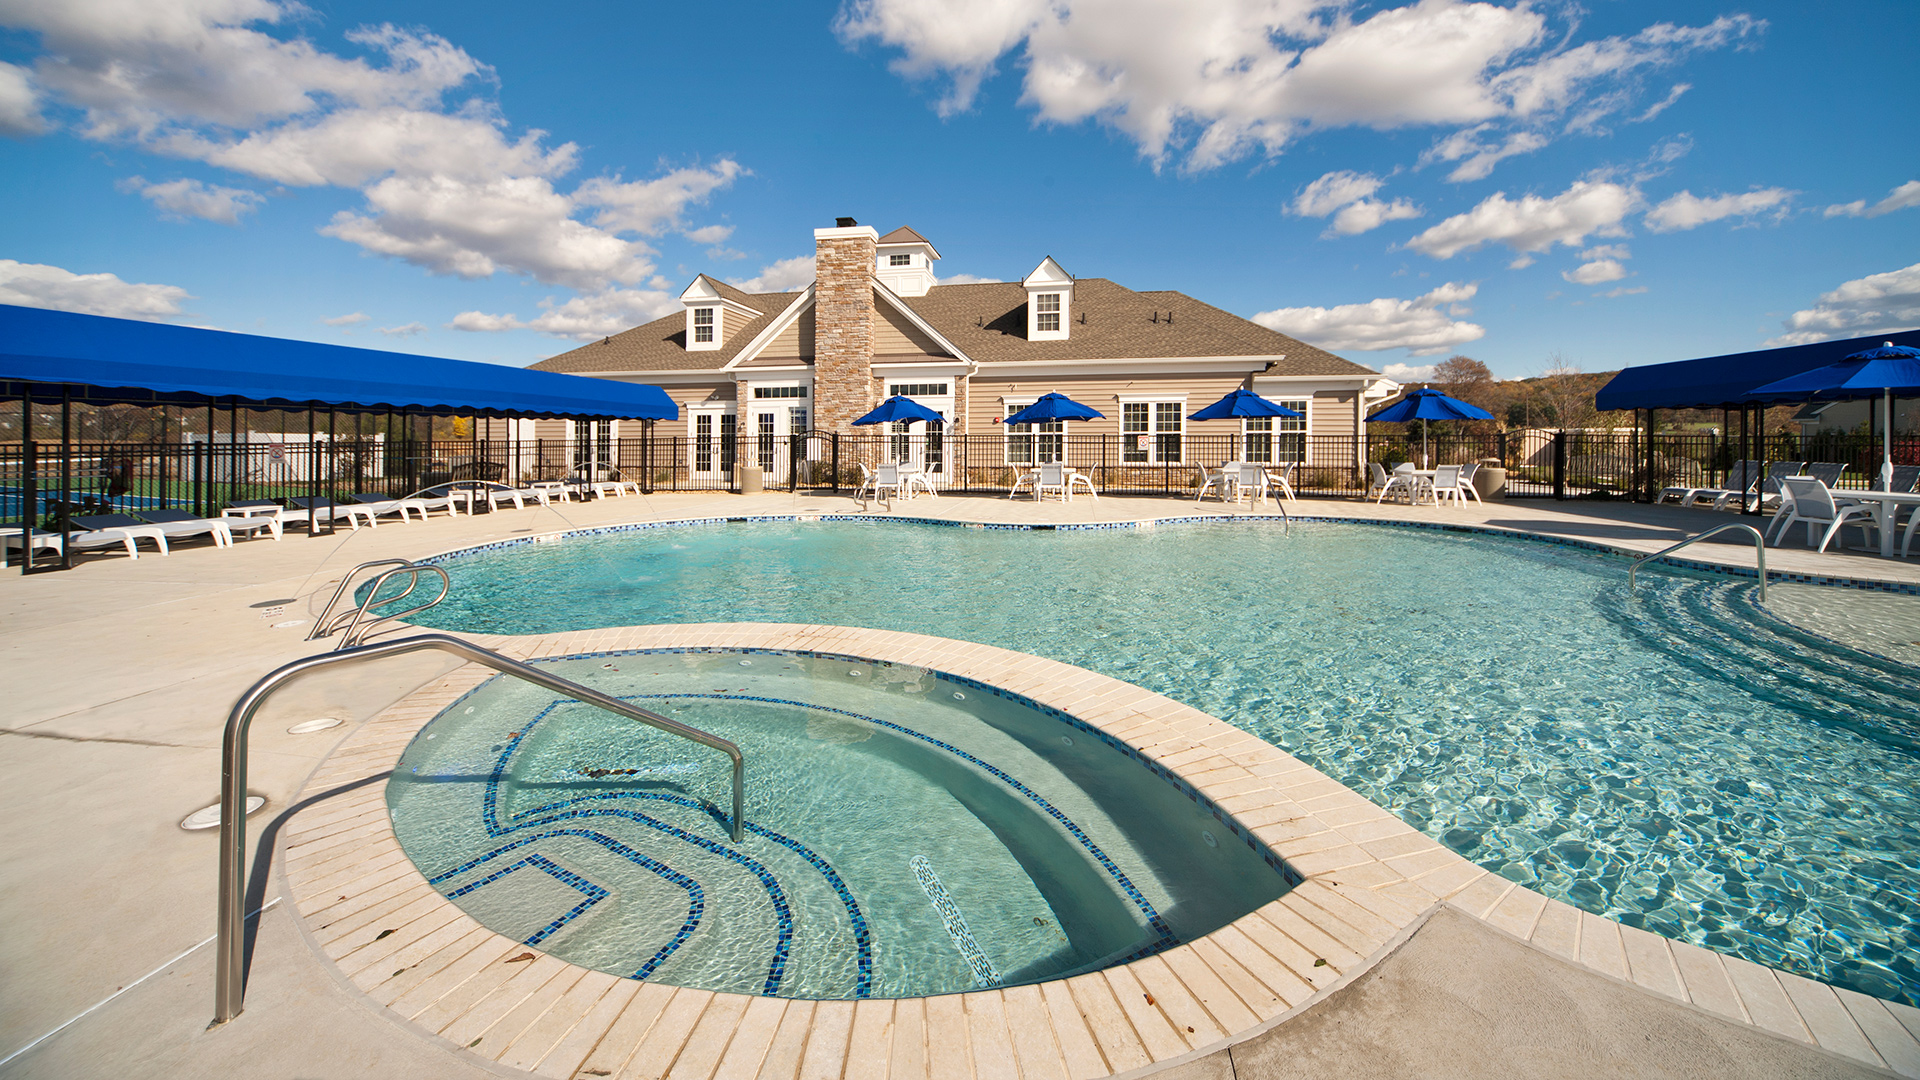 Take a peaceful swim in your new outdoor heated pool